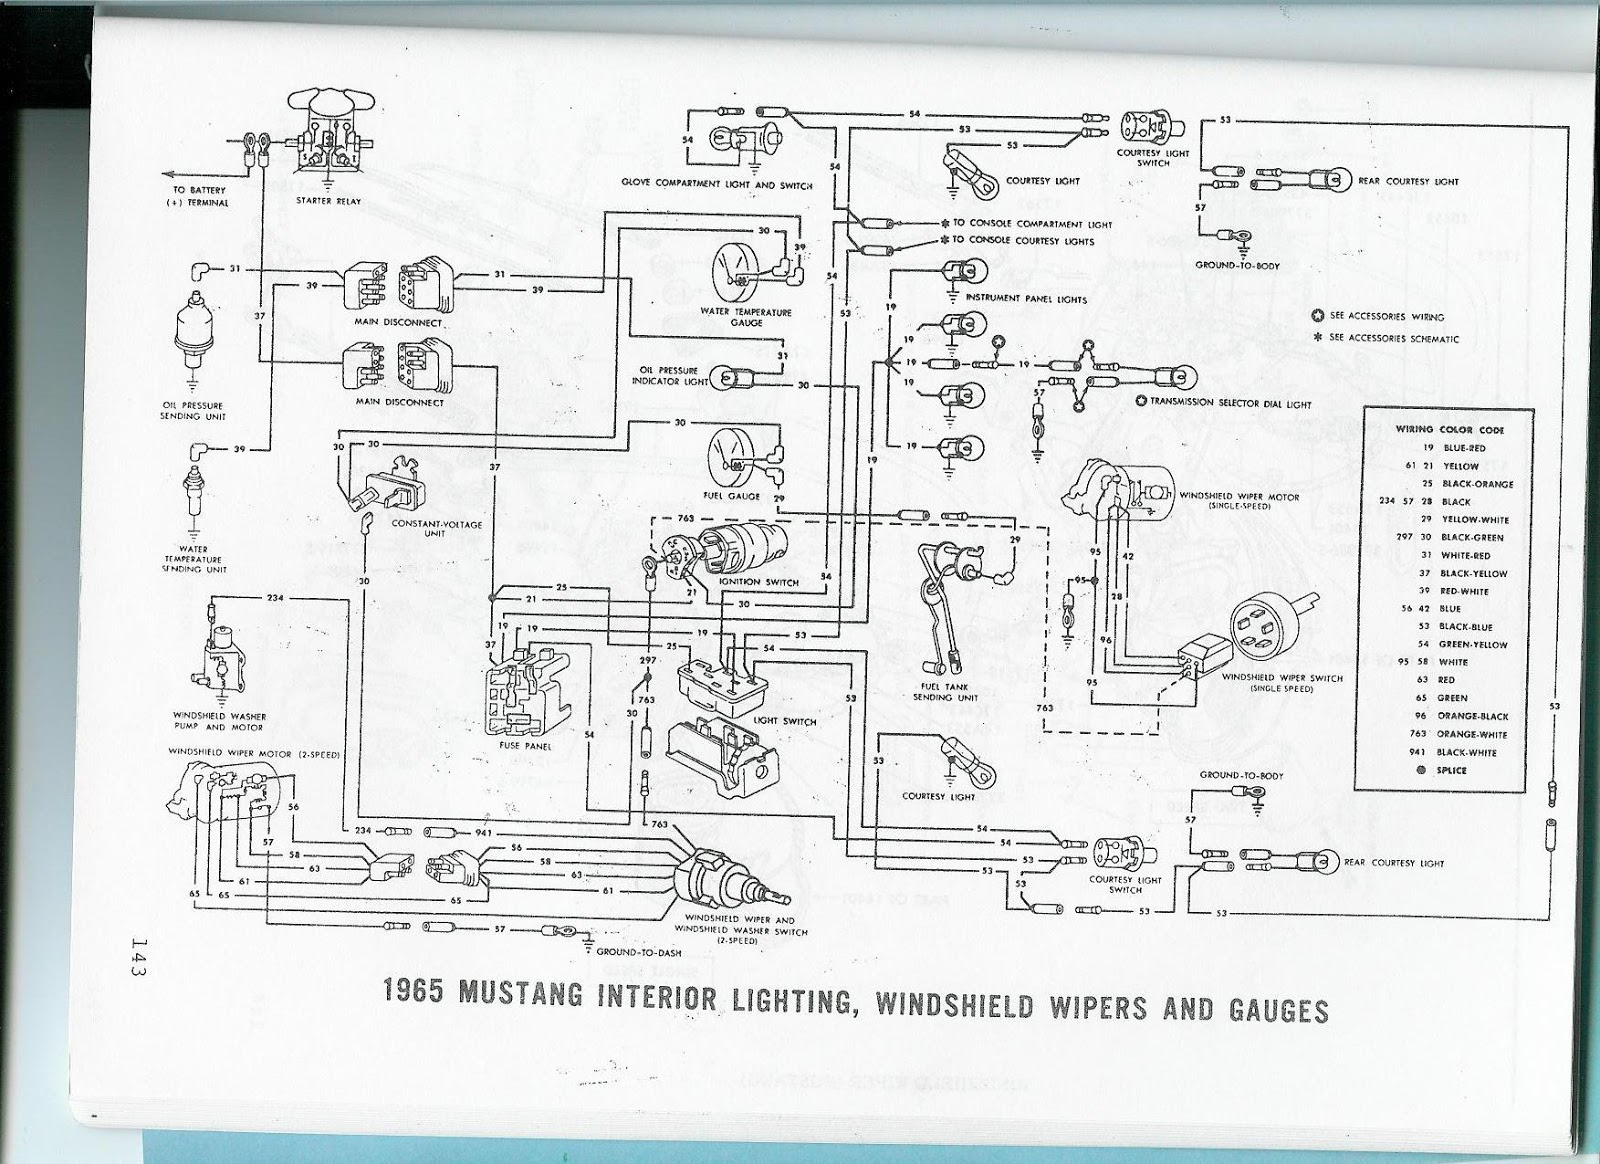 the care and feeding of ponies 1965 mustang wiring diagrams rh thecareandfeedingofponies blogspot com 1965 Mustang Radio Wiring Diagram 1965 Ford Mustang Wiring Diagram